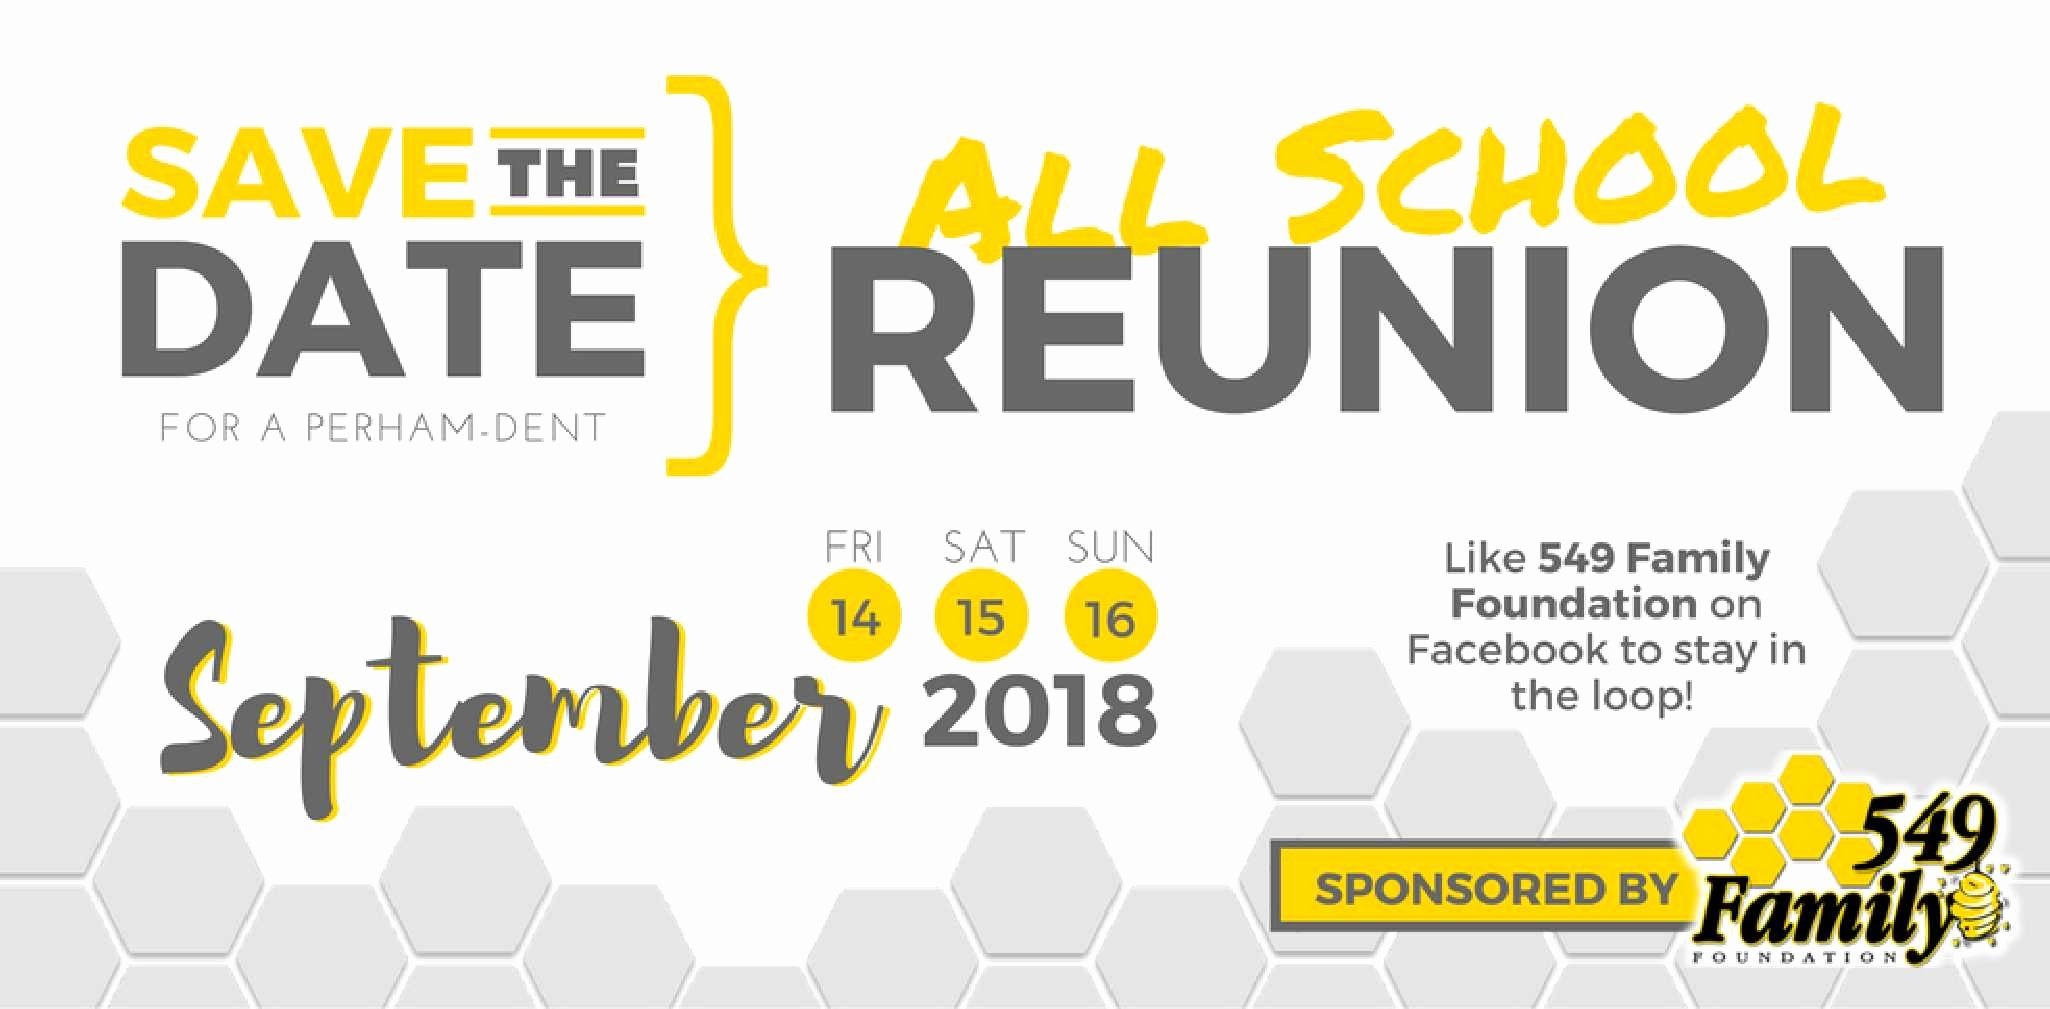 Save the Date Class Reunion Luxury All School Reunion Save the Date Perham area Chamber